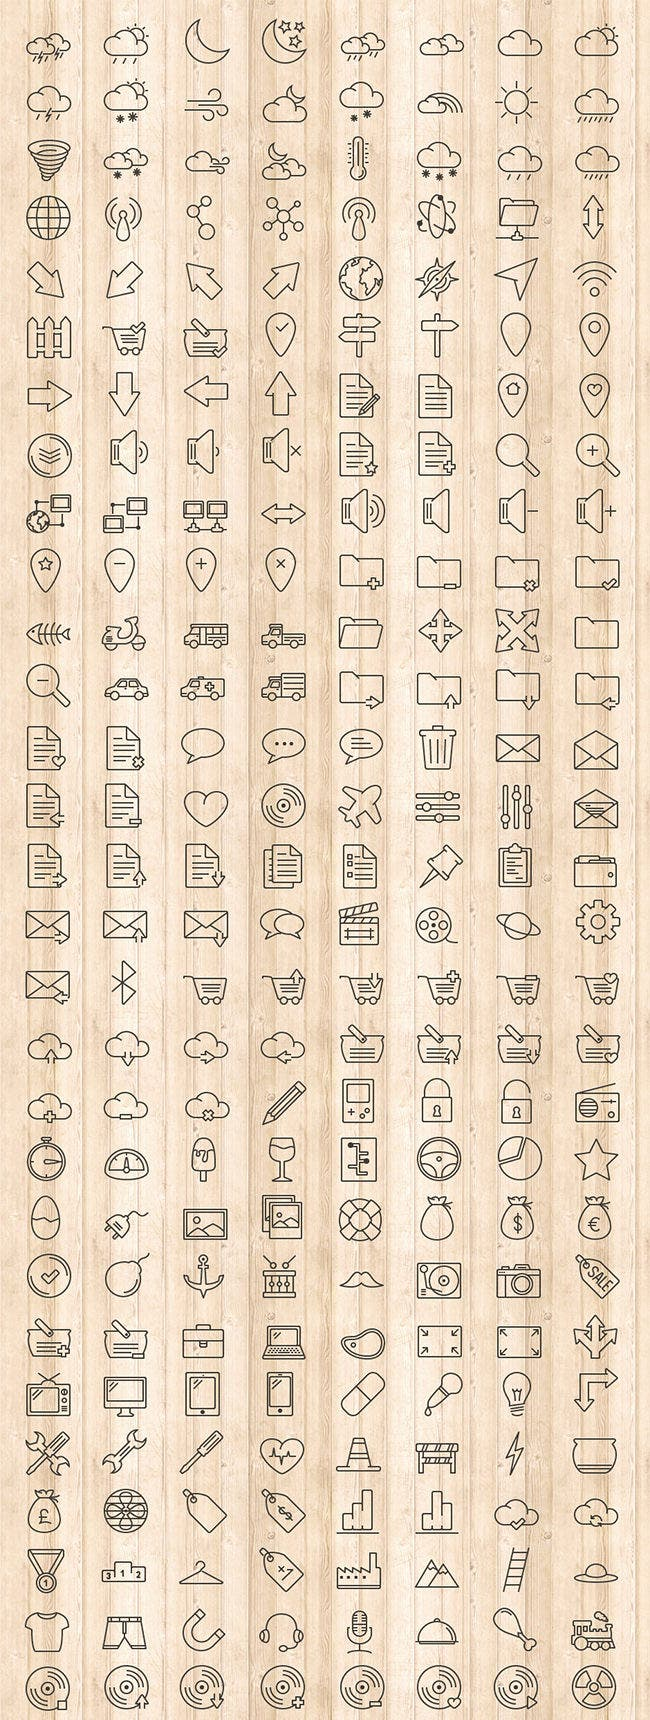 outline ui icons pack